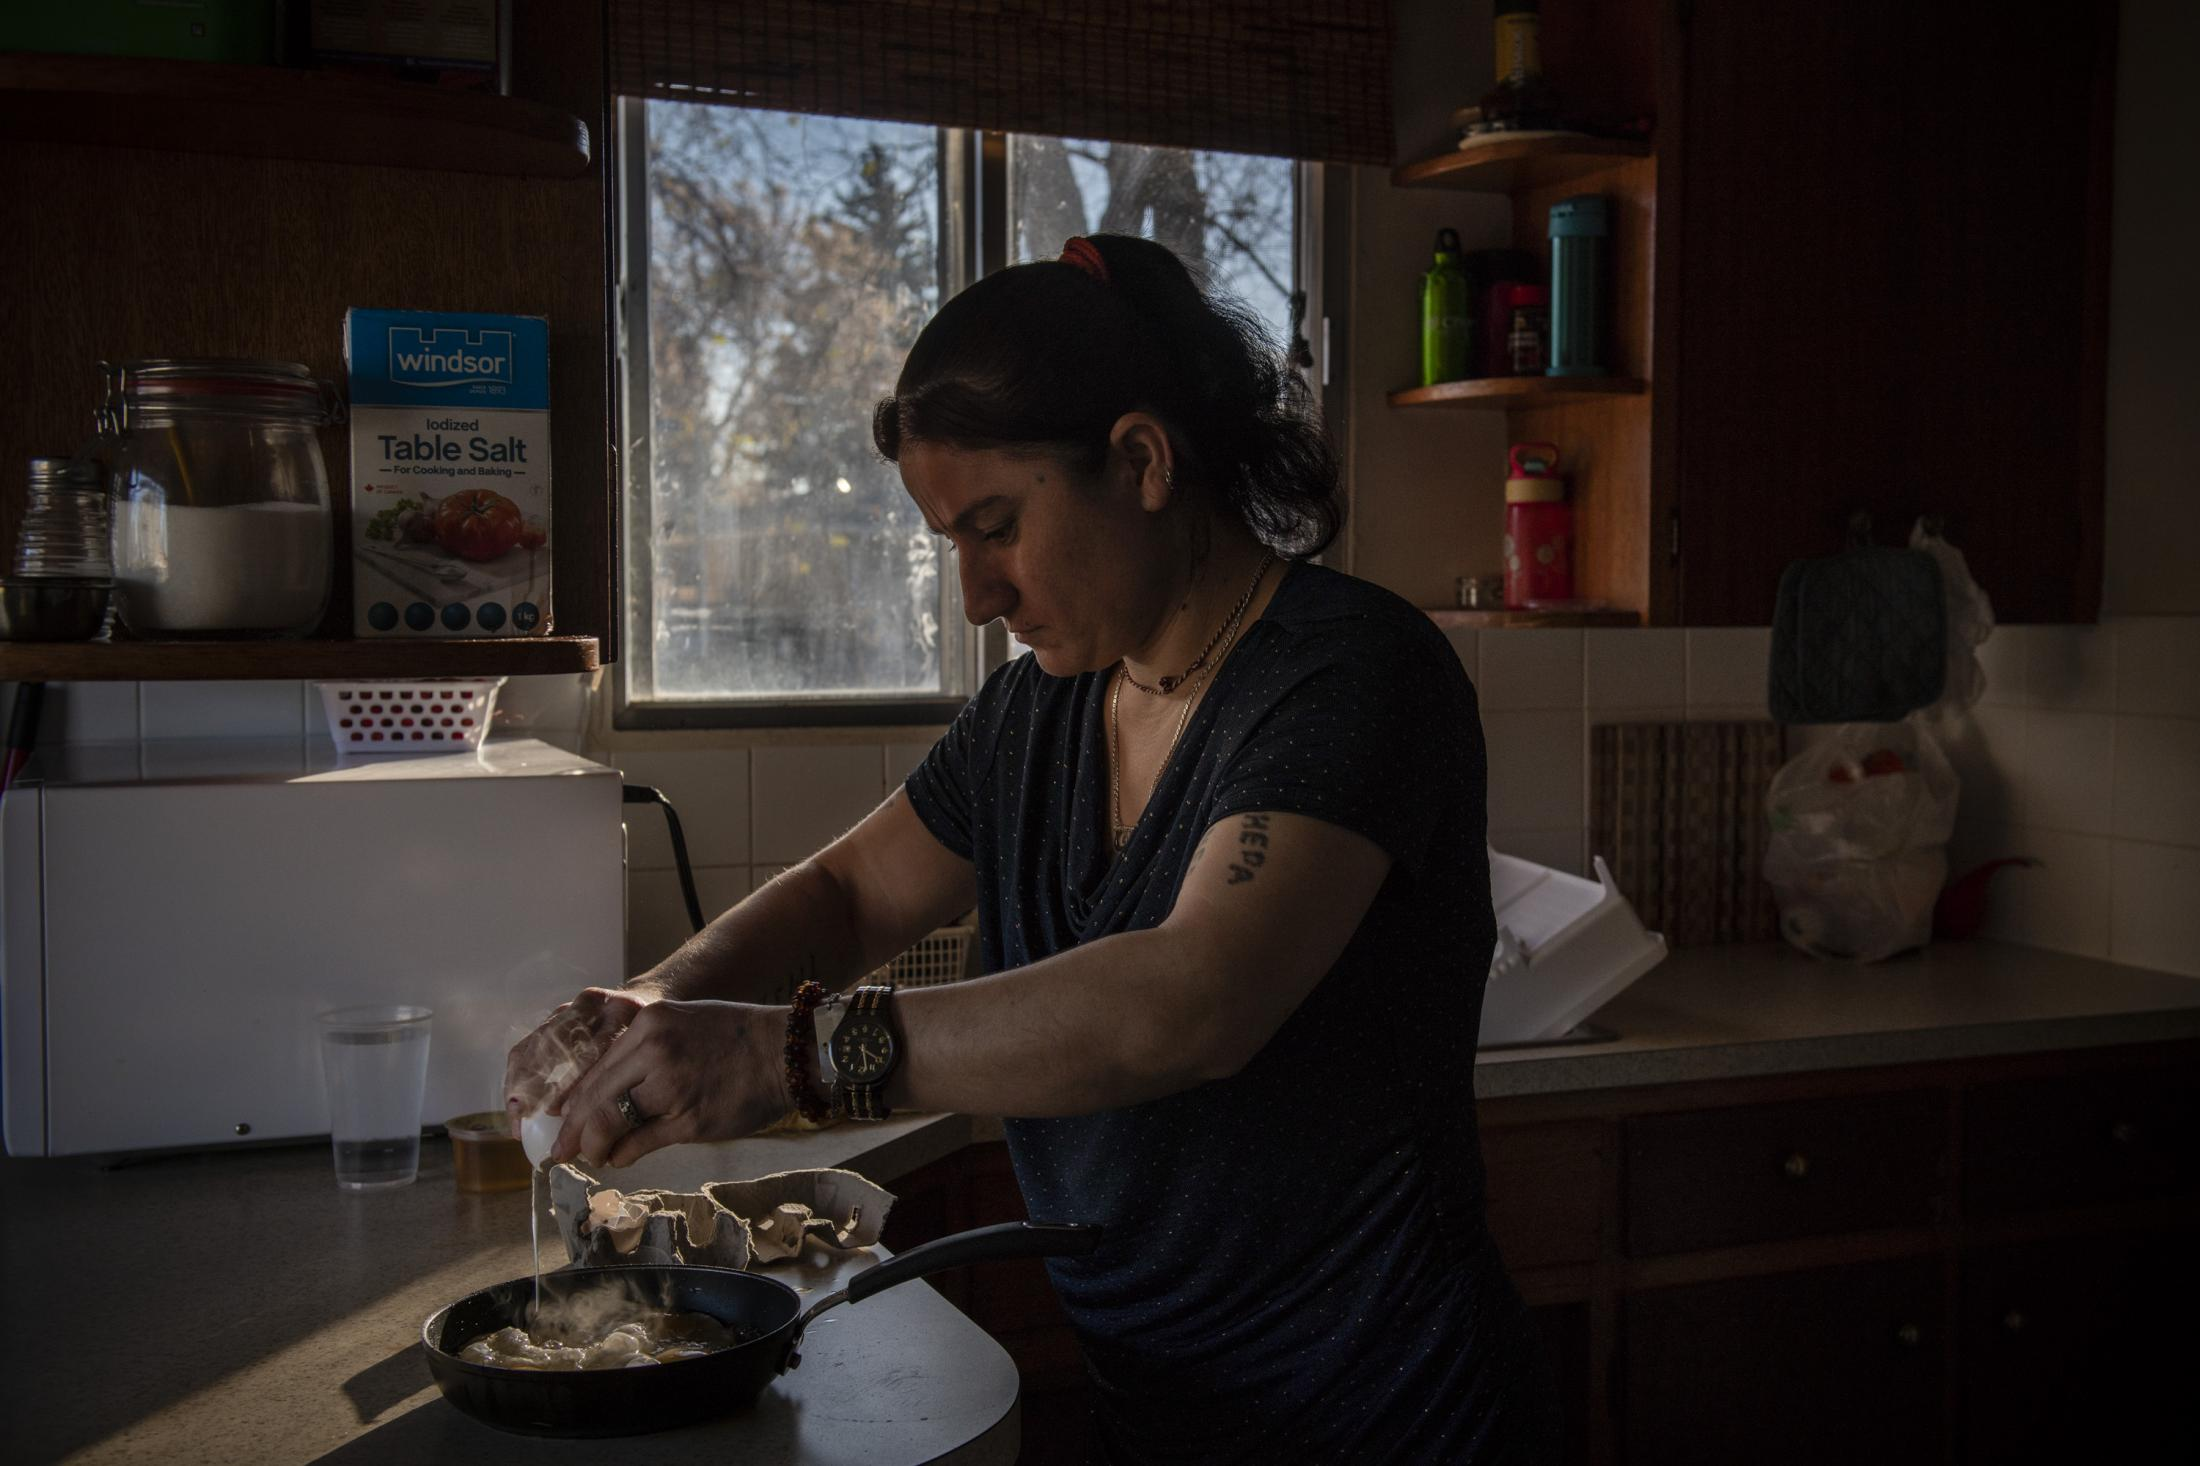 CALGARY | CANADA | 10/17/18 | Jihan (29) prepares breakfast for herself and her sister. She does most of the house work and cooking in the house single handedly despite her condition. The two sisters are Yazidi refugees living in Calgary, arriving in Canada during the summer of 2017 as part of the Victims of Daesh program, a special resettlement program created by the Canadian government to help Yazidi refugees.